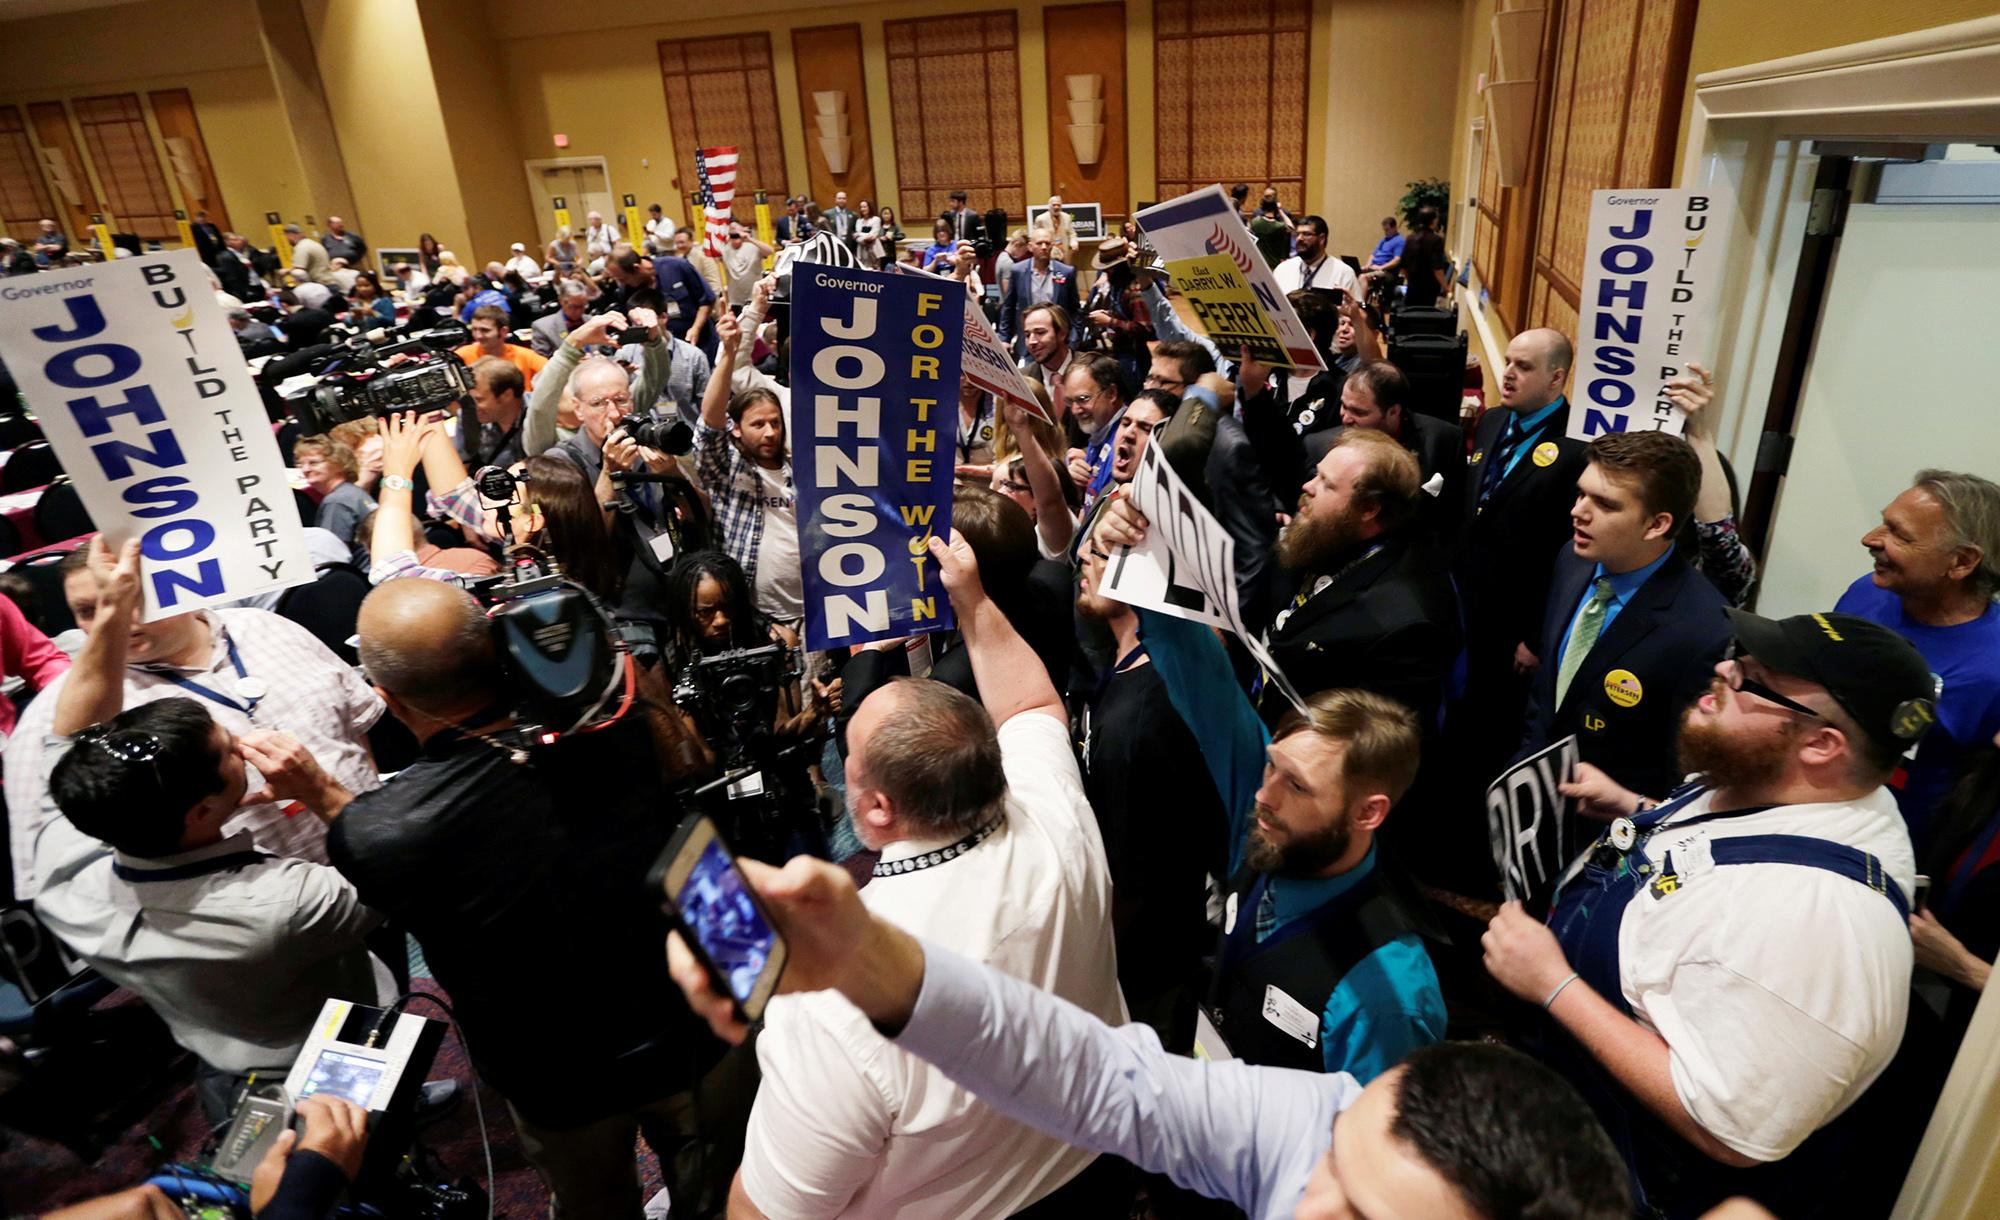 Attendees at the Libertarian Party National Convention yell for their candidates at the Rosen Center in Orlando, Fla., on May 29. (Photo: Kevin Kolczynski/Reuters)